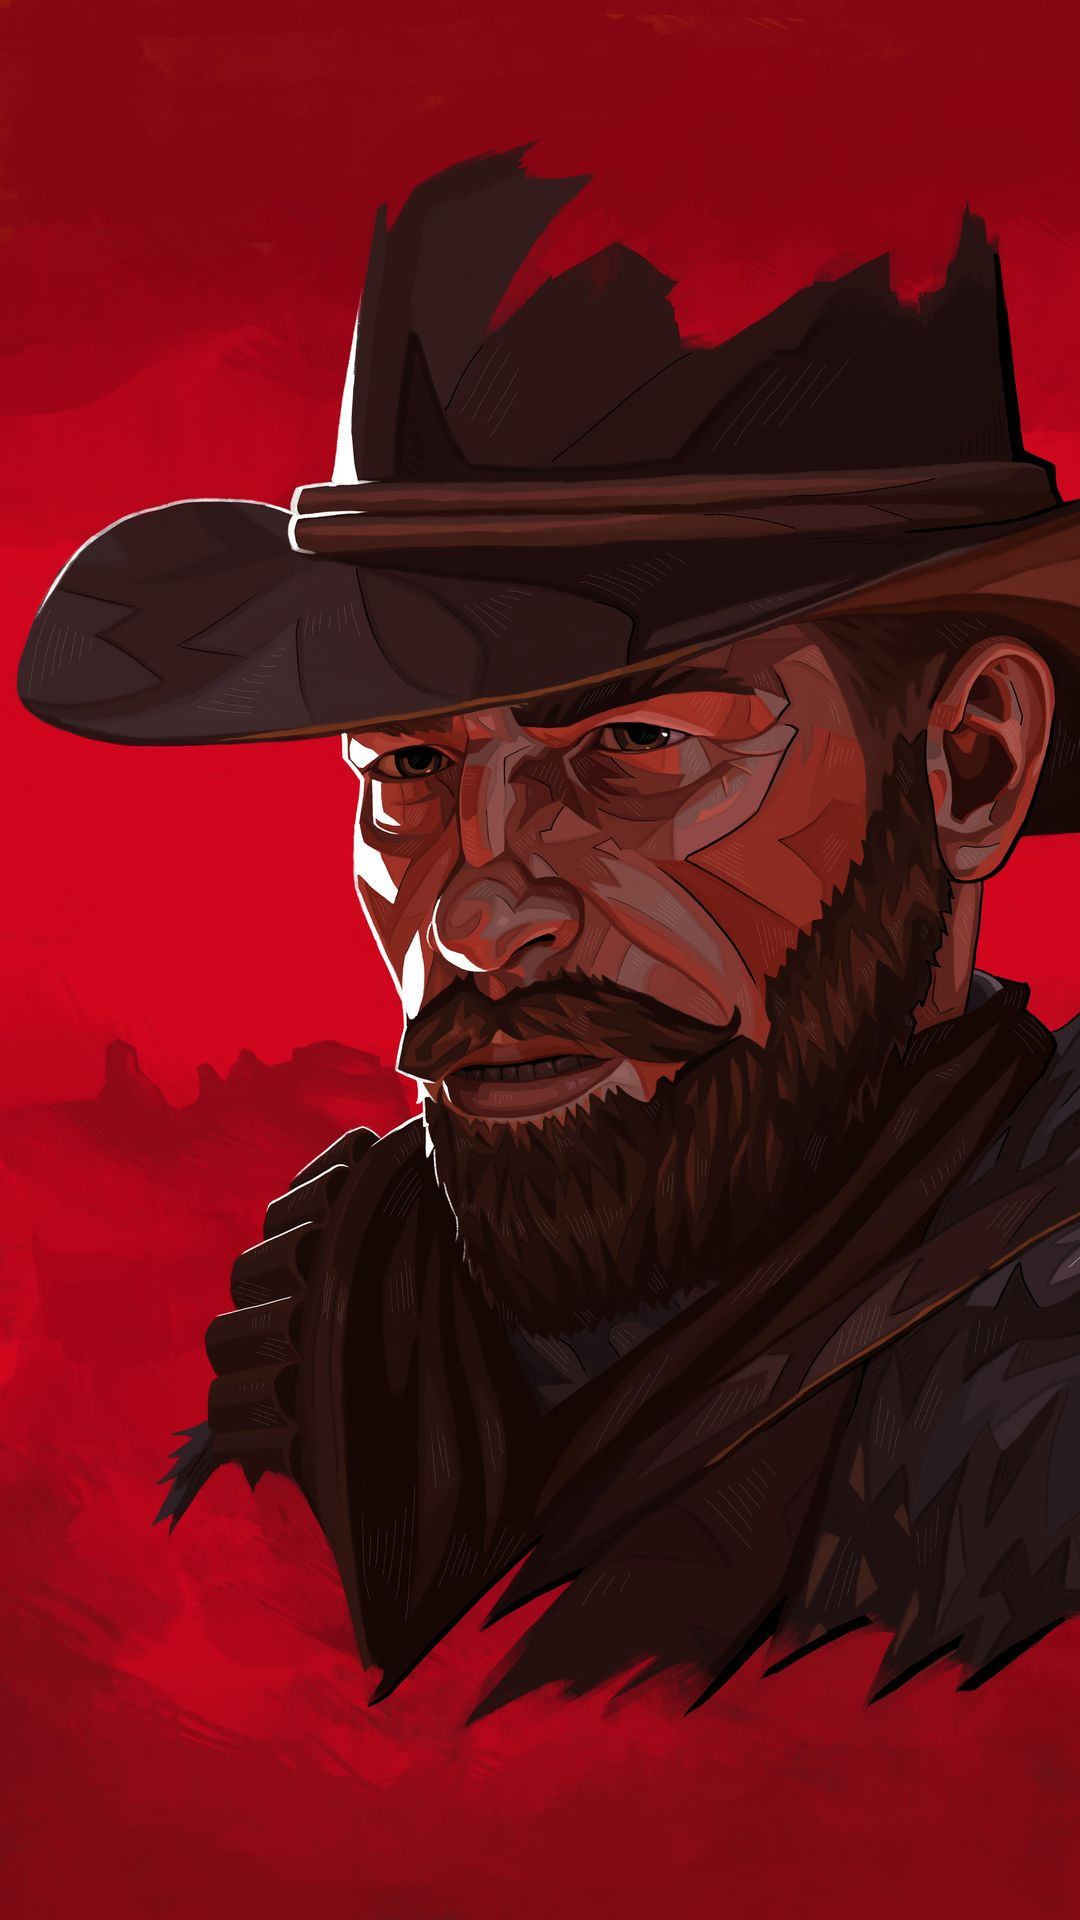 Arthur Morgan Red Dead Redemption 2 4k 2019 Mobile Wallpaper Iphone Android Samsung Pixe Red Dead Redemption Red Dead Redemption Art Red Dead Redemption Ii